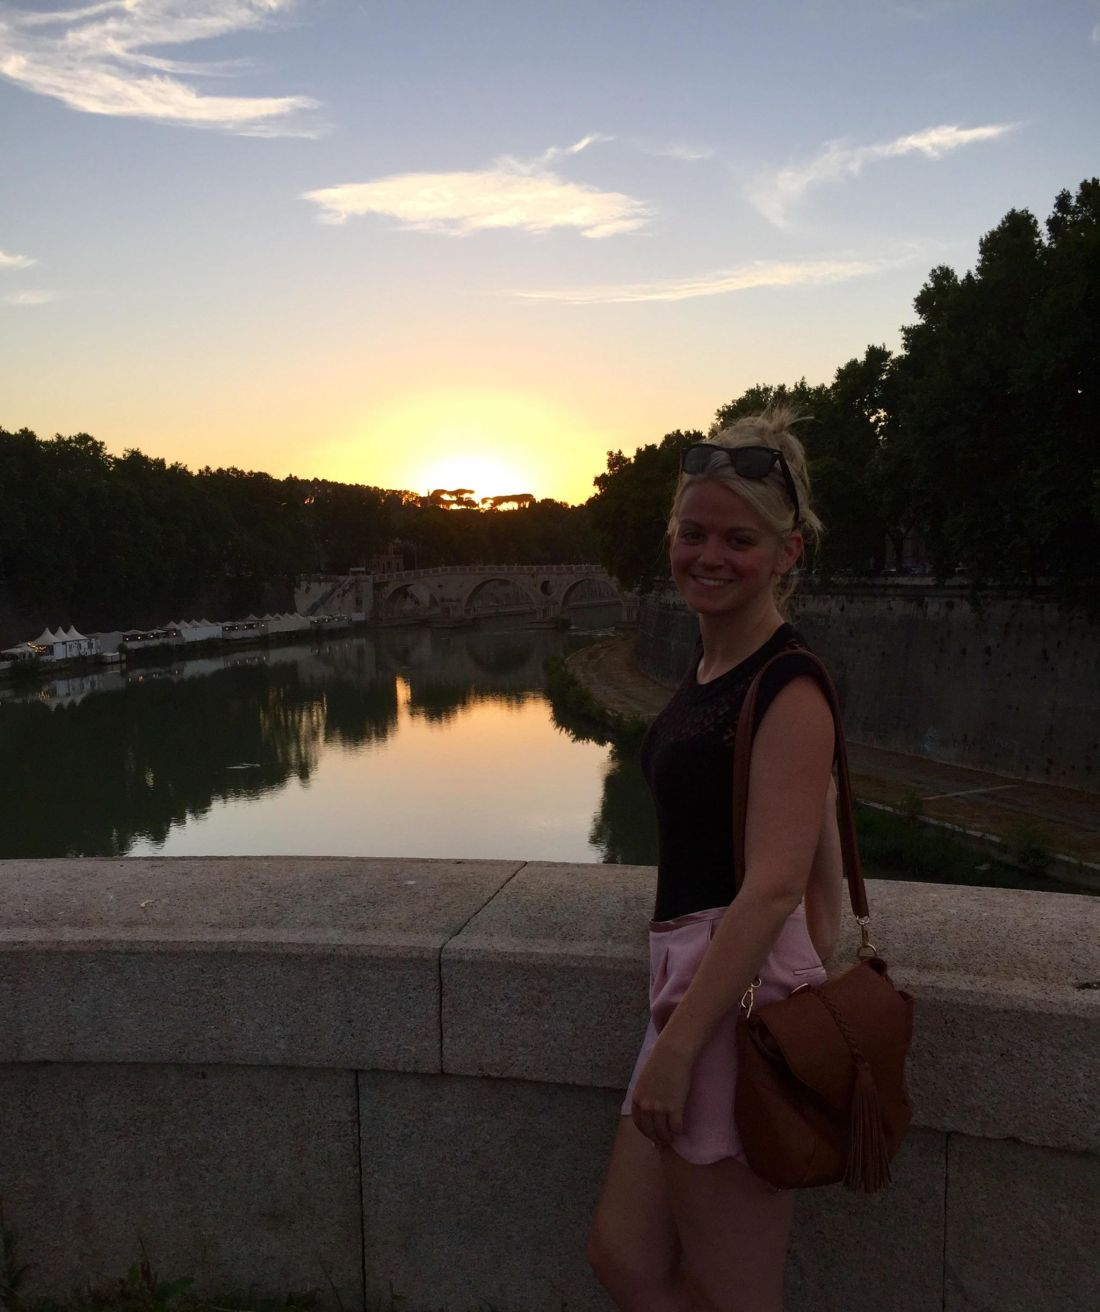 Laura in Trastevere, Rome